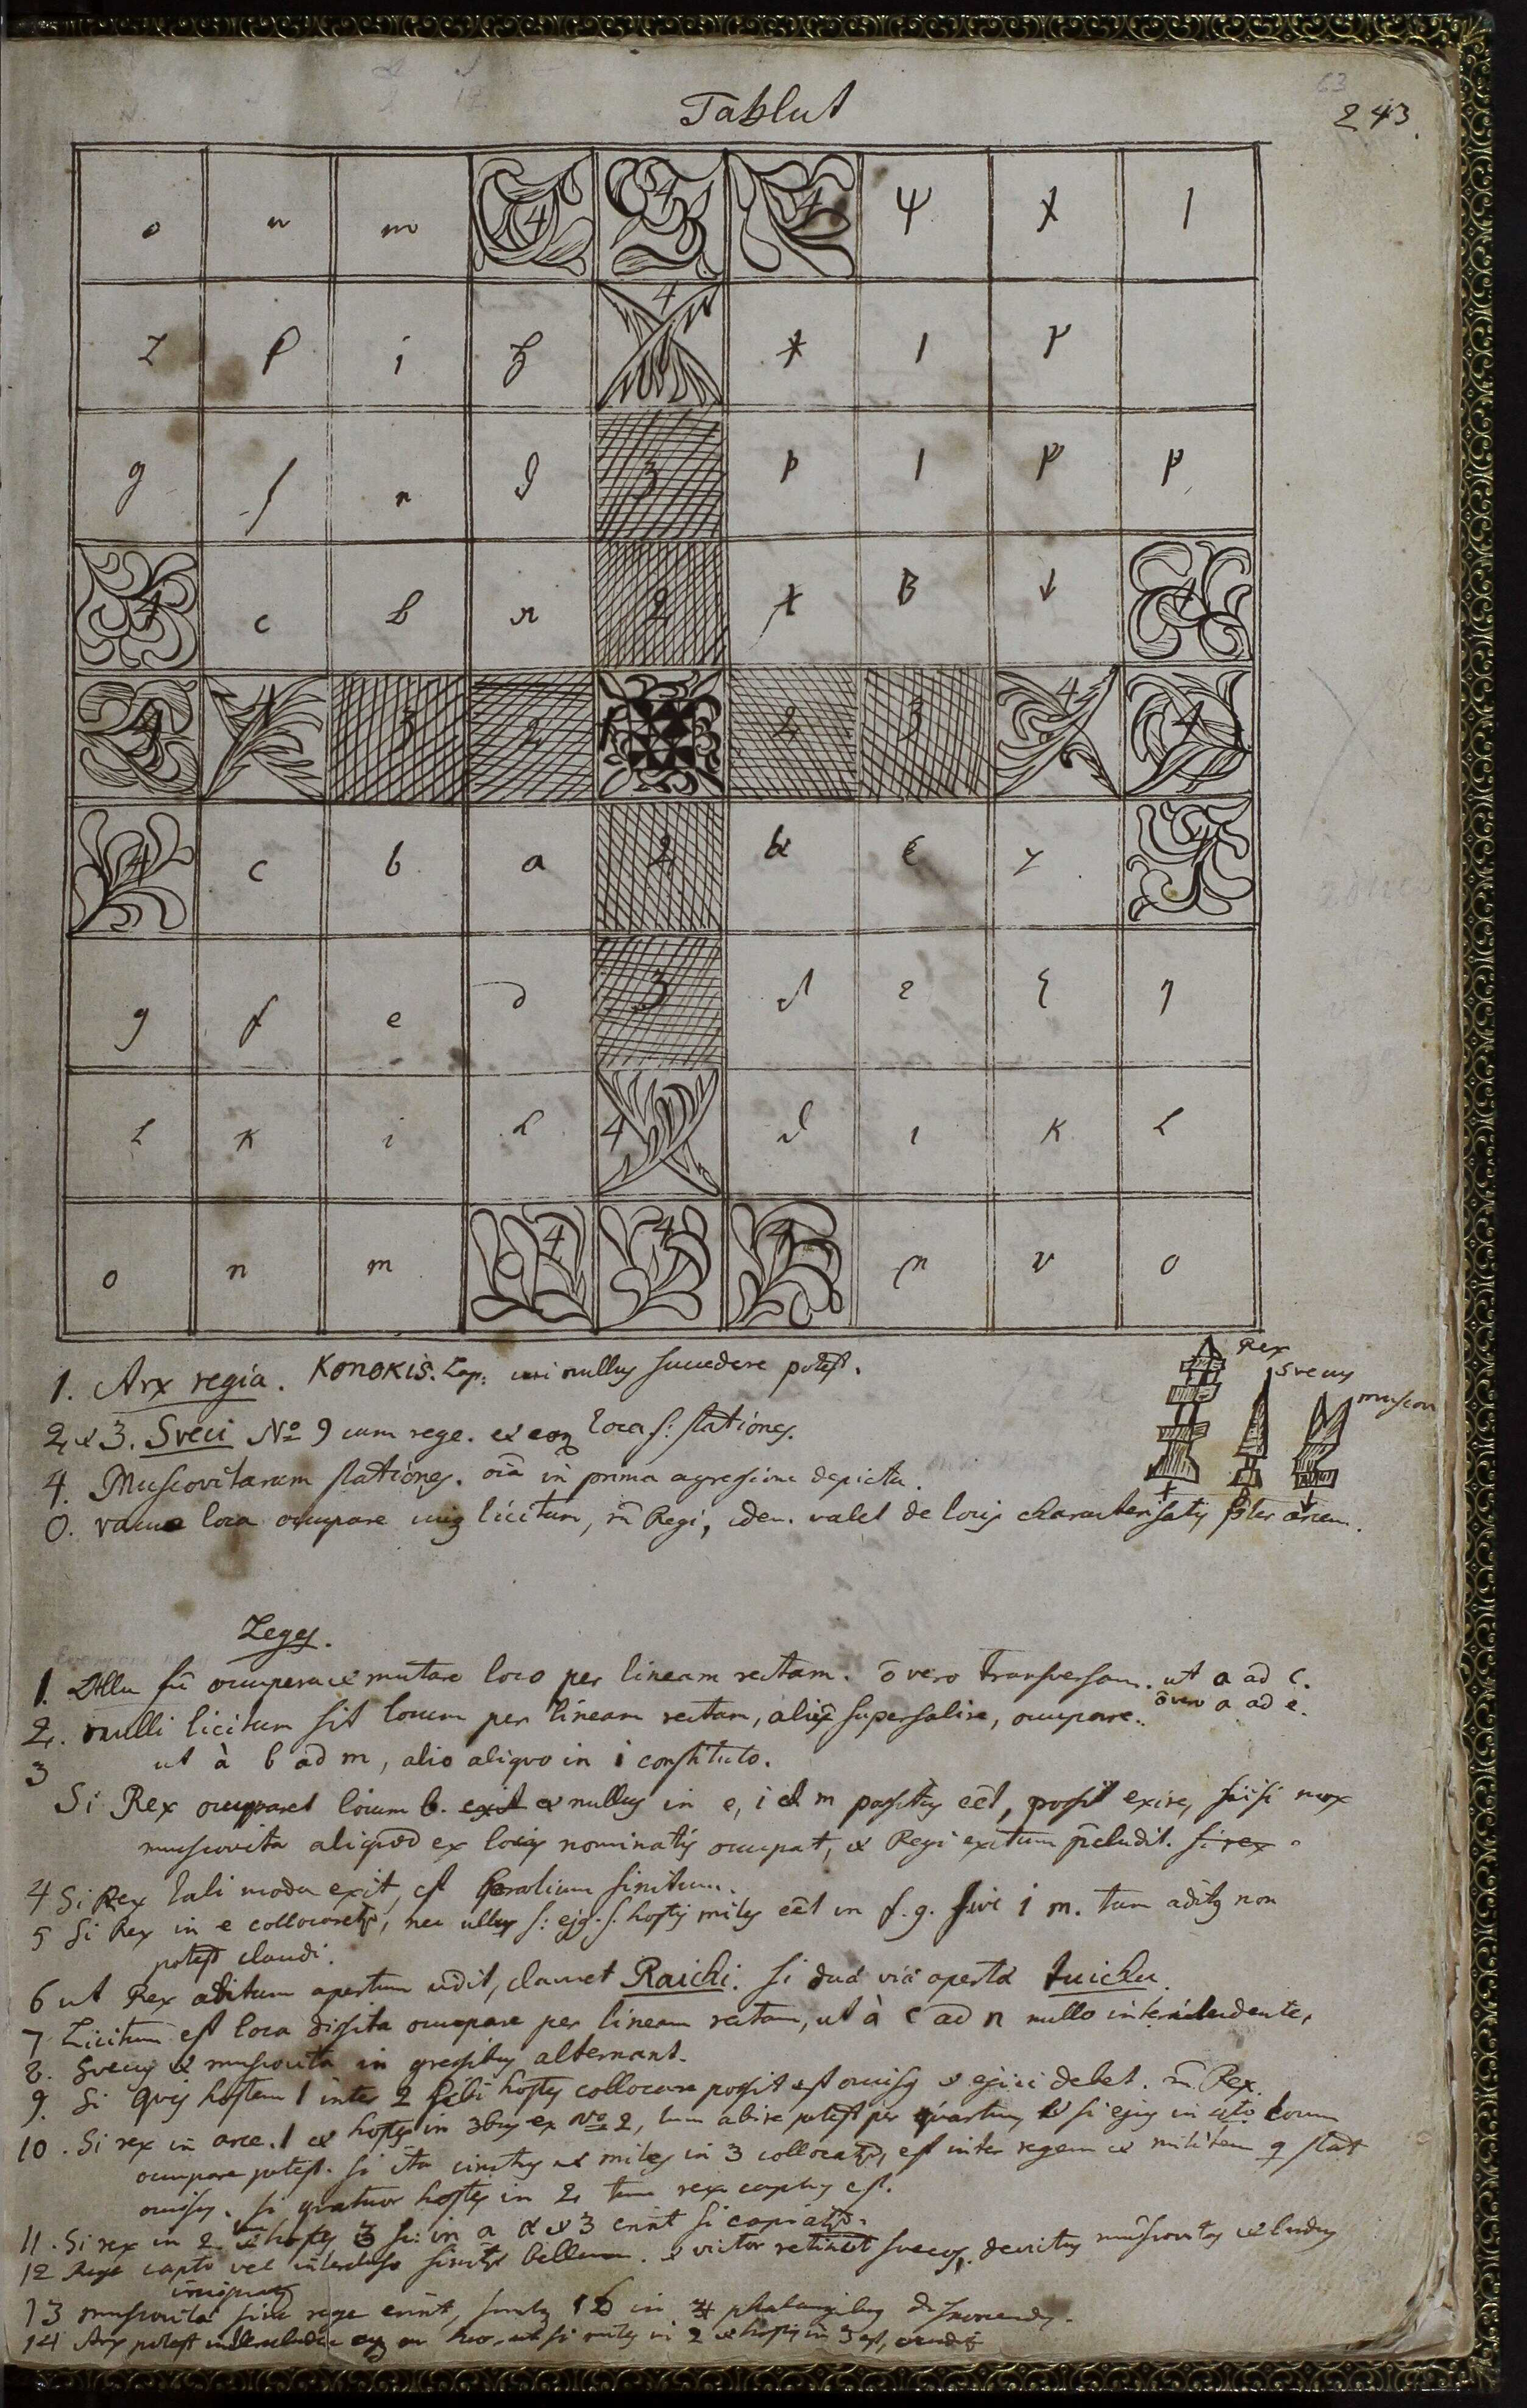 Drawing of Tablut board and rules in Latin. Folio 135 of the original manuscript of Iter Lapponicum, by Carl Linnaeus, 1732. The Linnean Society of London, Manuscript GB/110/LM/LP/TRV/1/2/1, Folio 135.